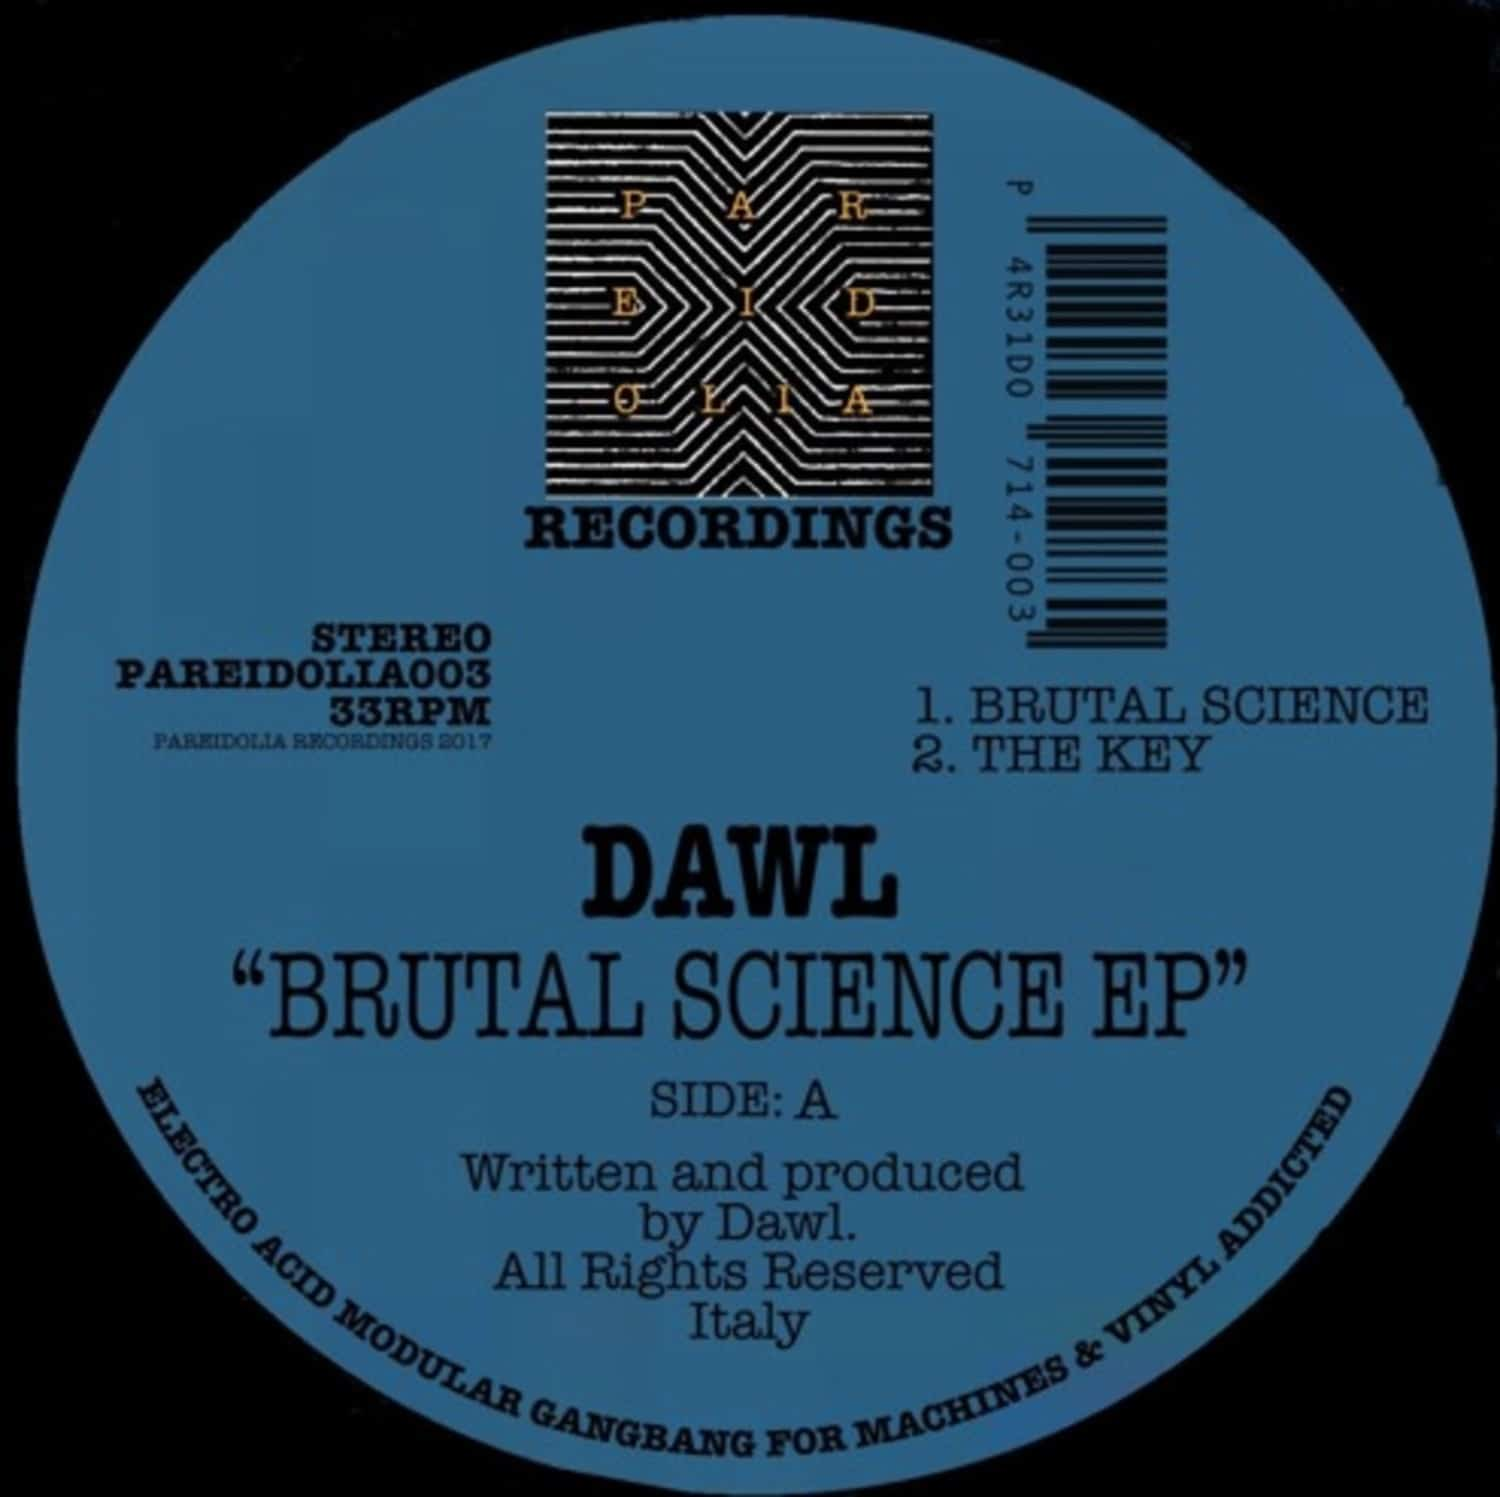 Dawl - BRUTAL SCIENCE EP